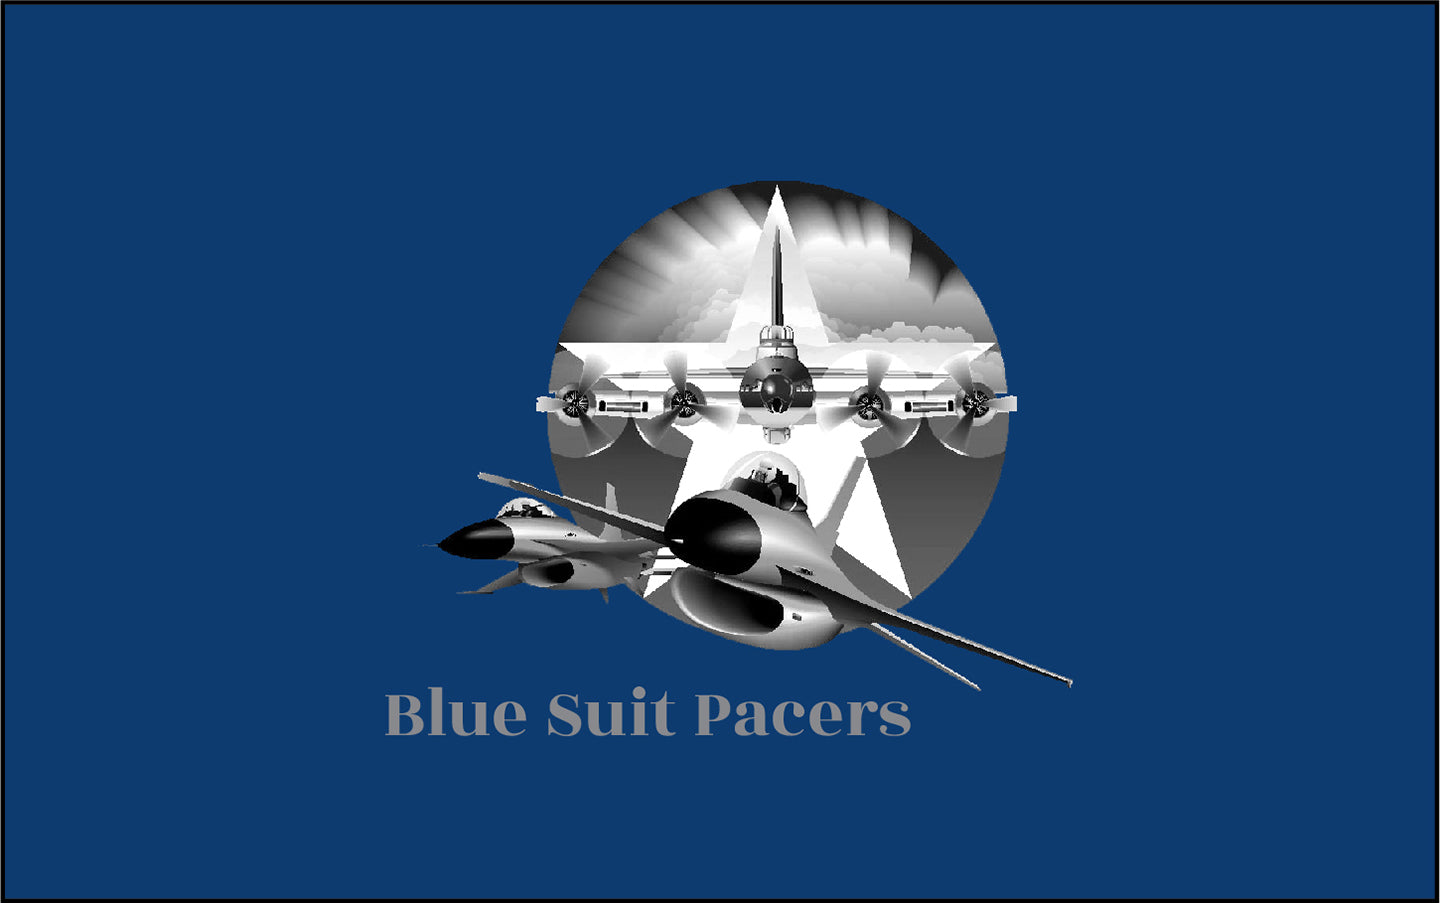 Blue Suit Pacers 06-2019 RACEDAY BAG